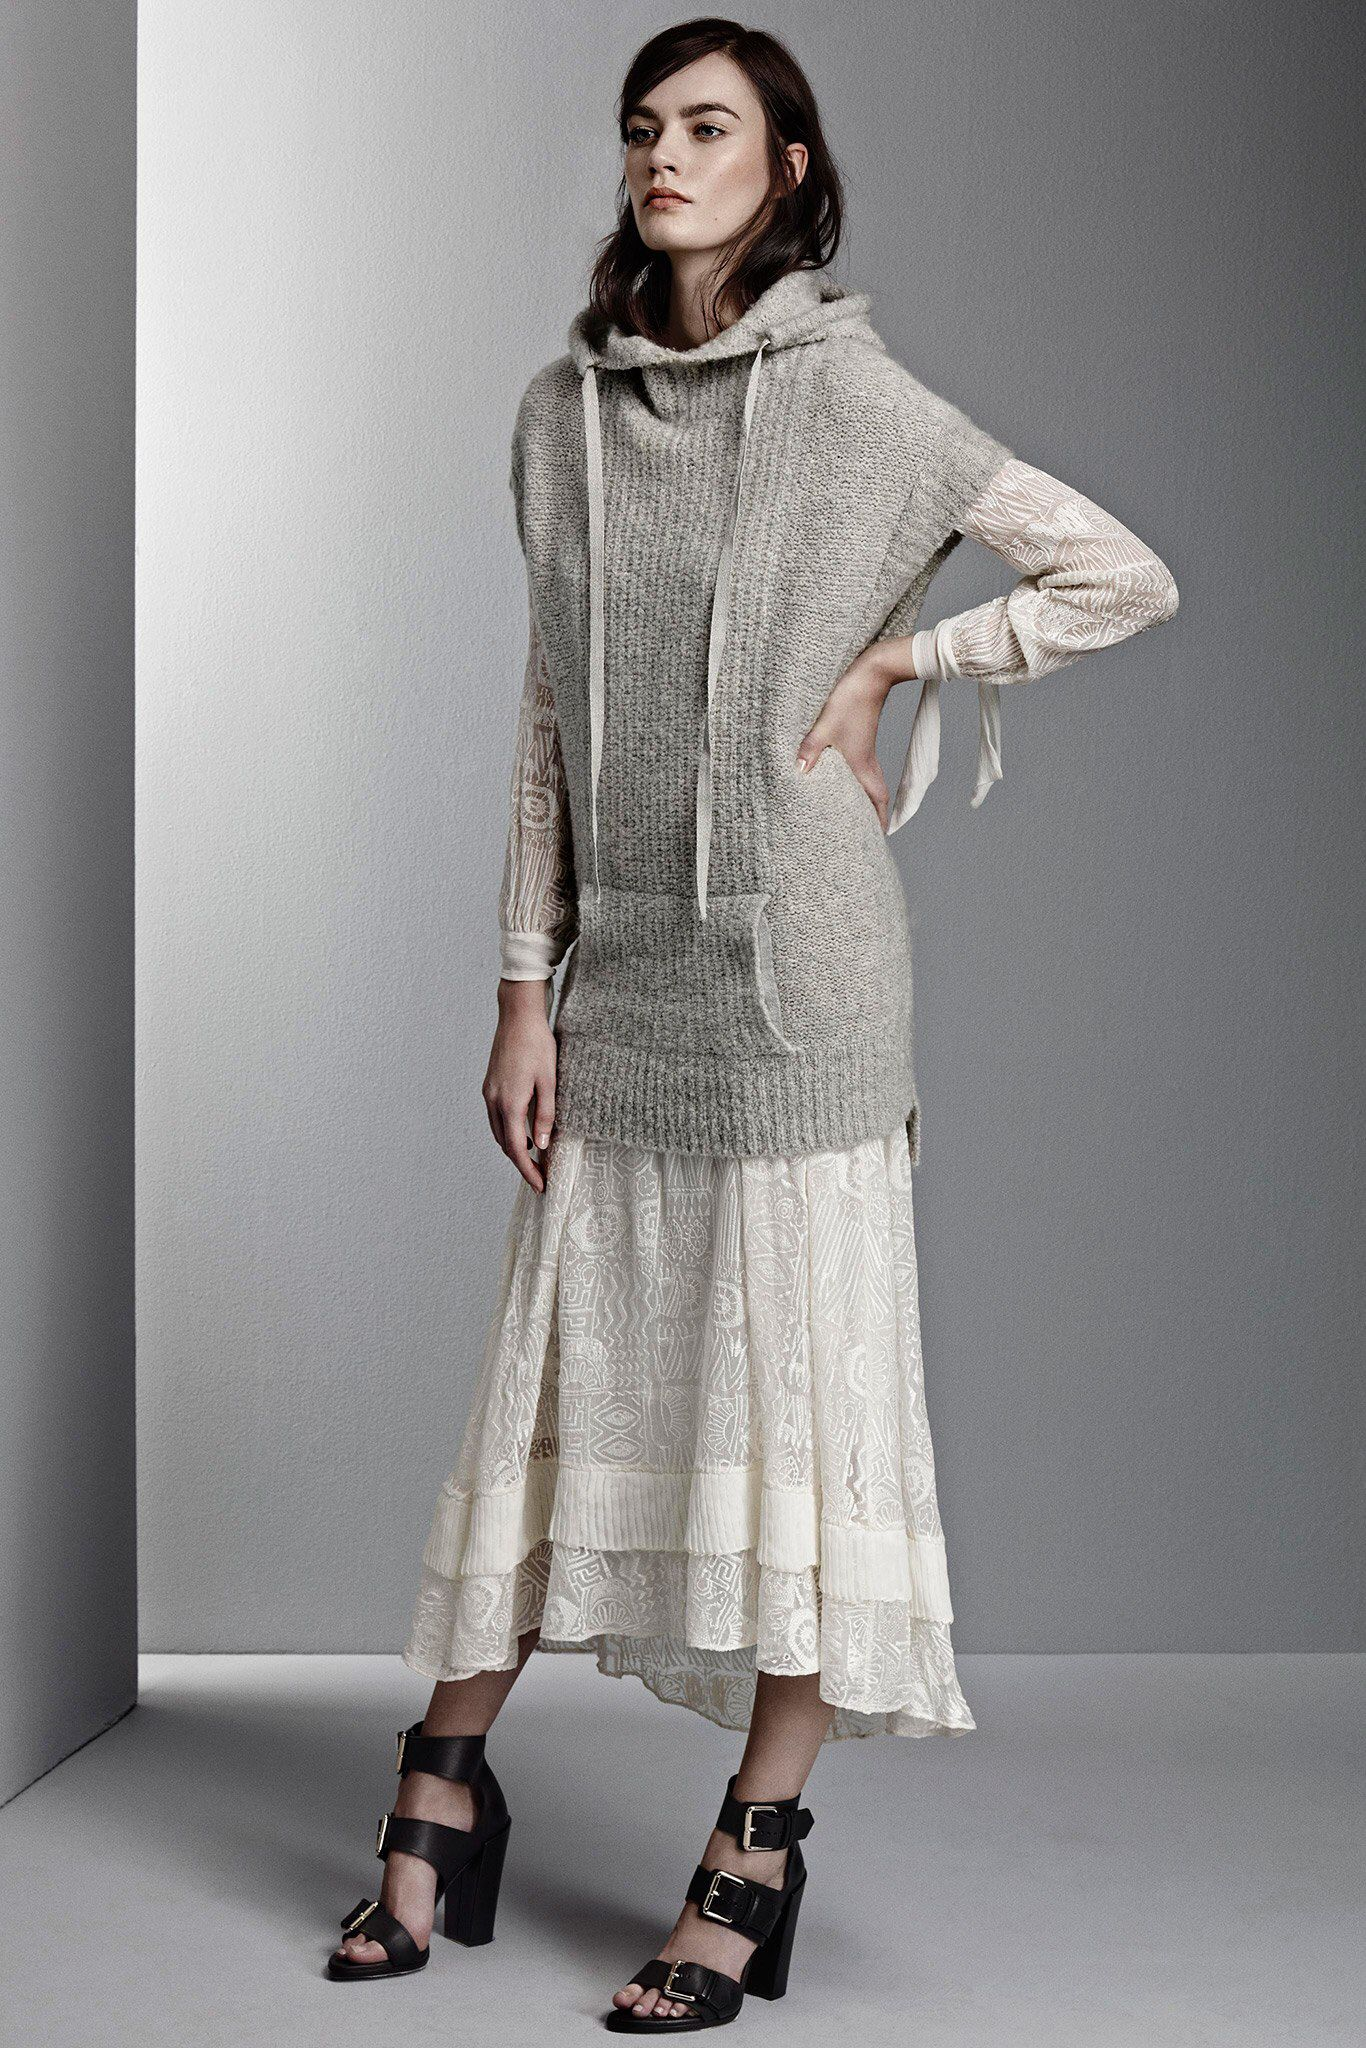 Rebecca taylor prefall fashion show collection i have bought